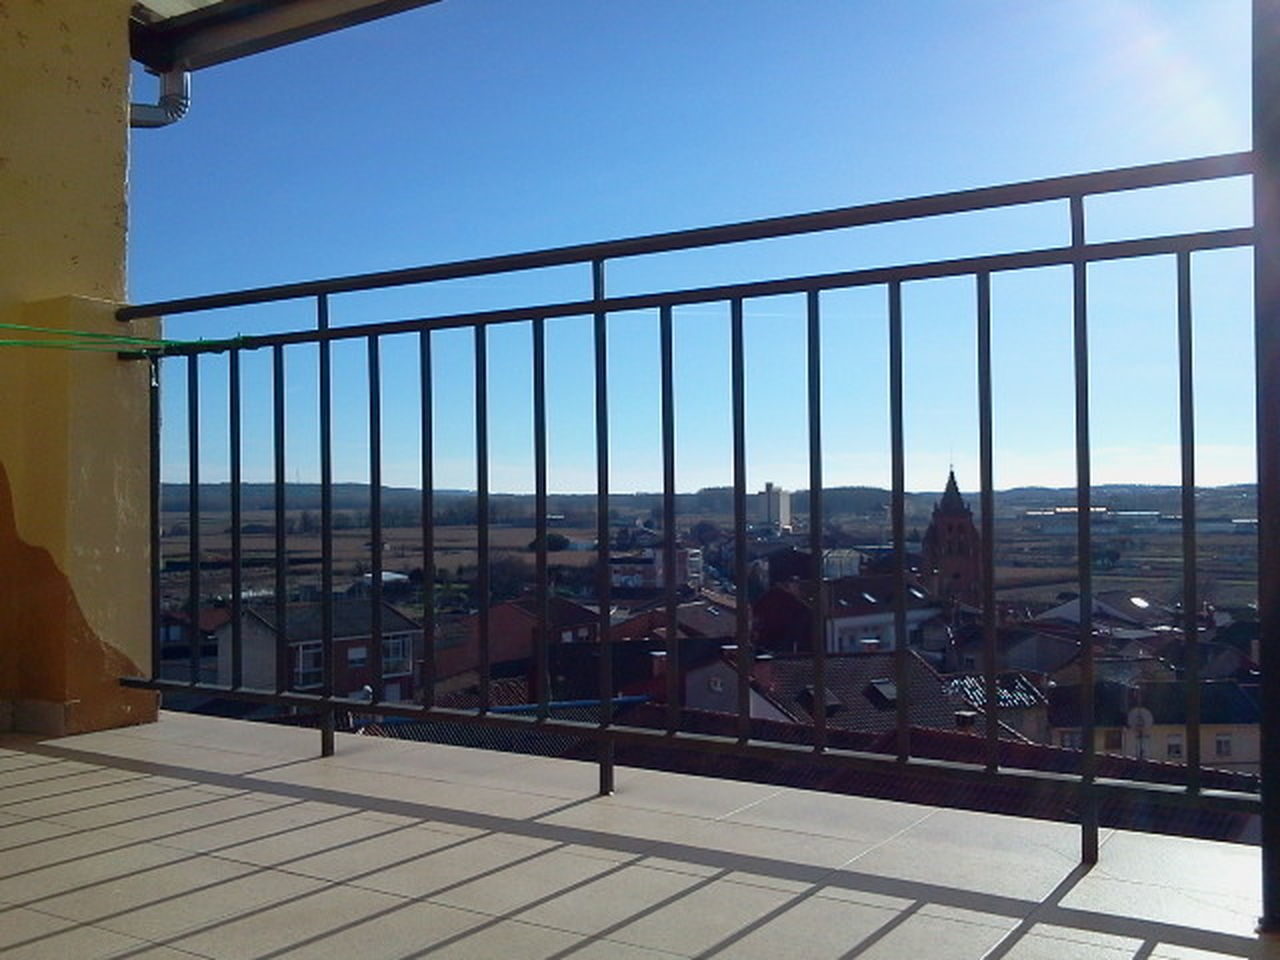 railing, day, clear sky, outdoors, sky, sunlight, architecture, built structure, no people, city